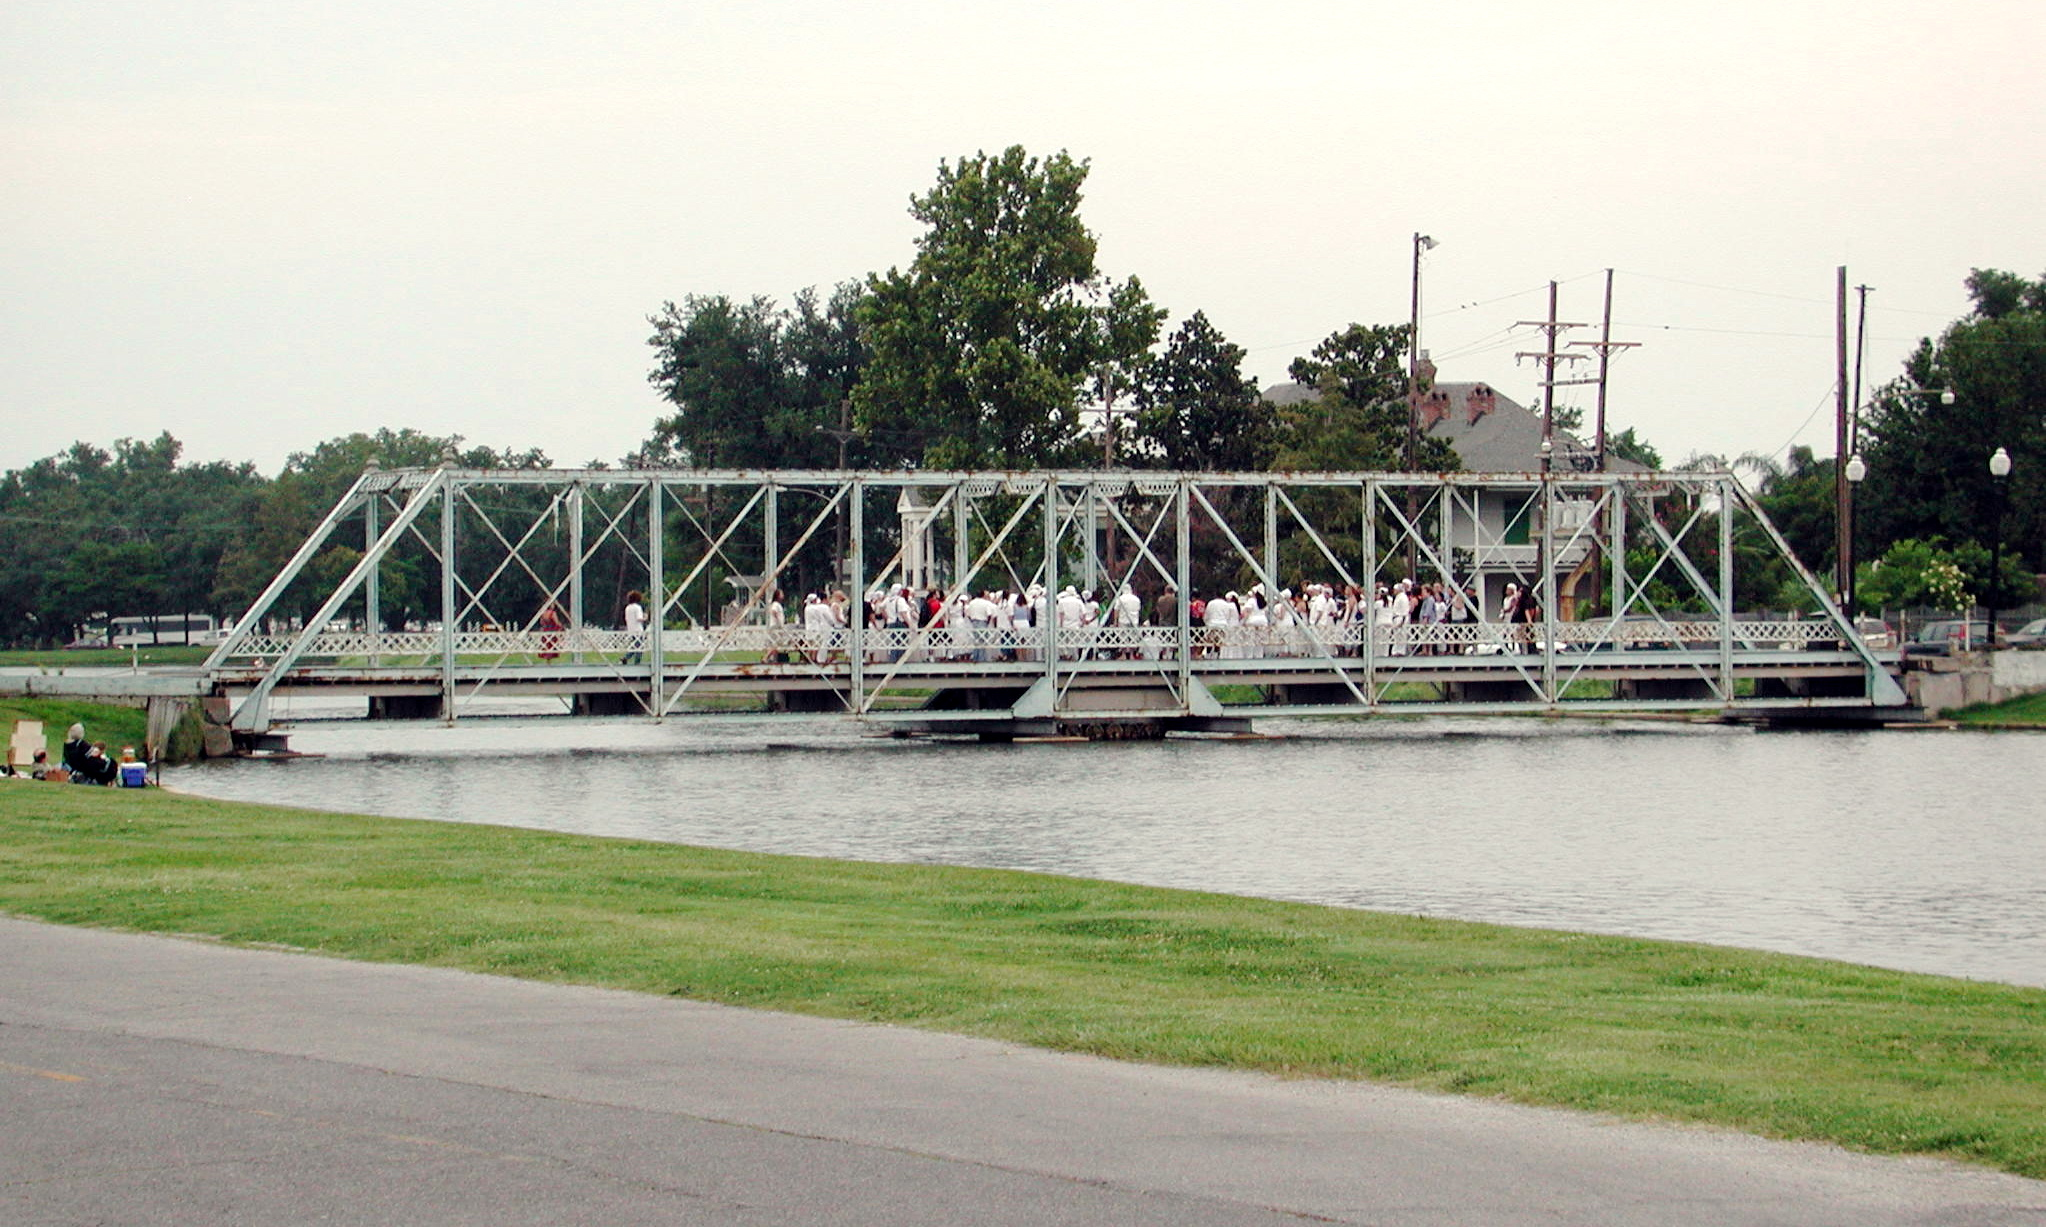 A pedestrian bridge spanning a small body of water. There are many people walking on the bridge.